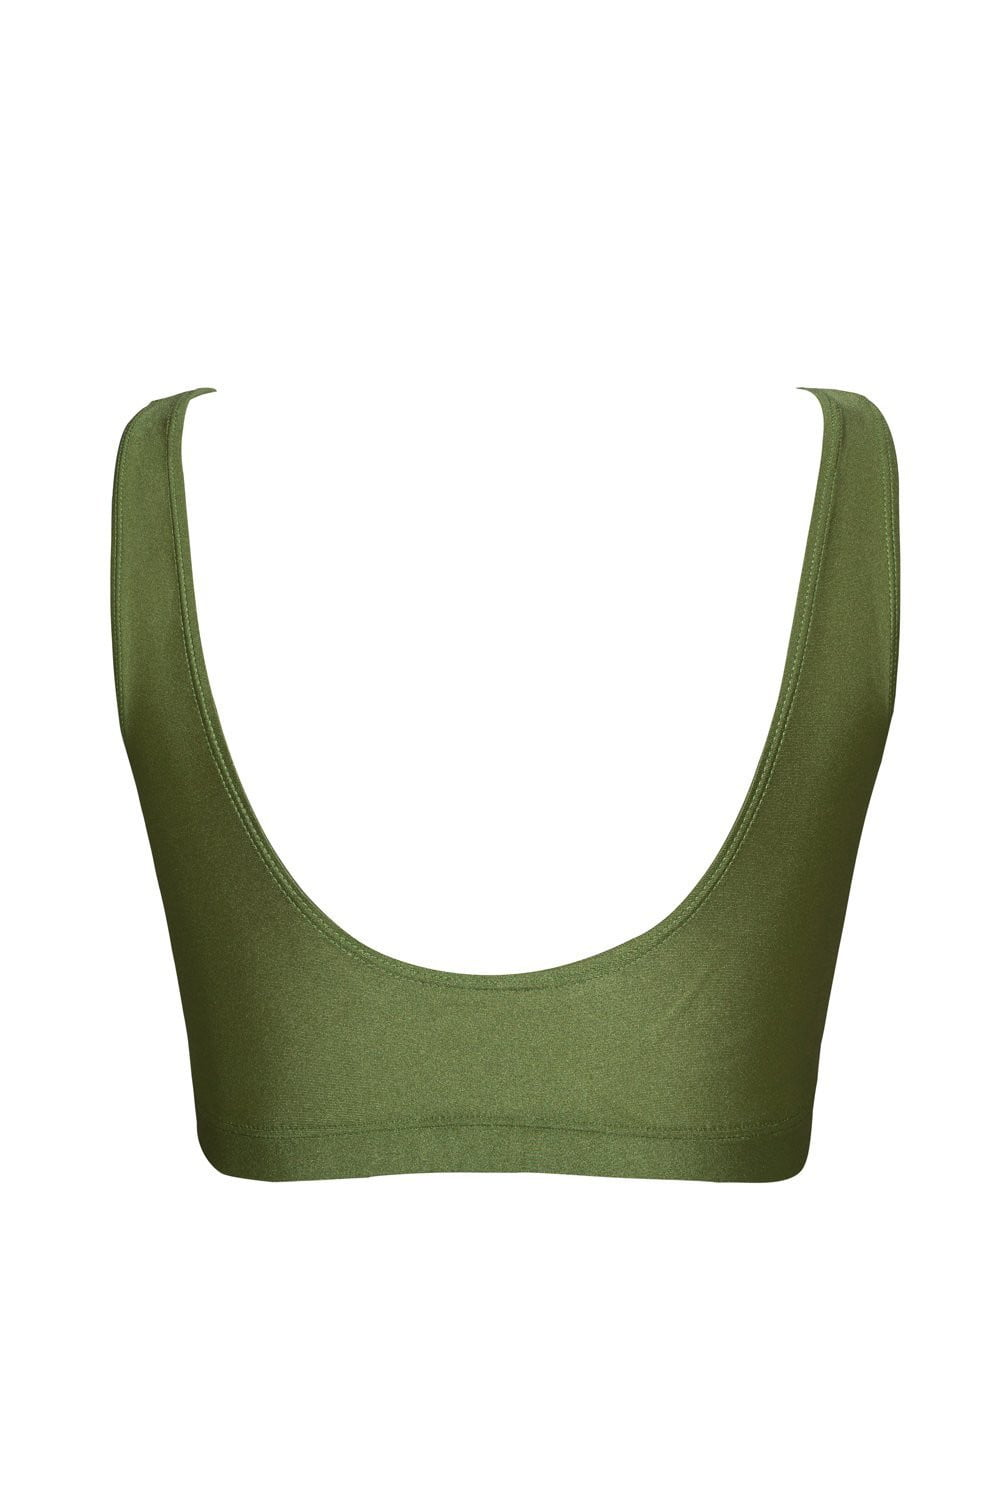 Dark Olive Green Crop Bikini Top